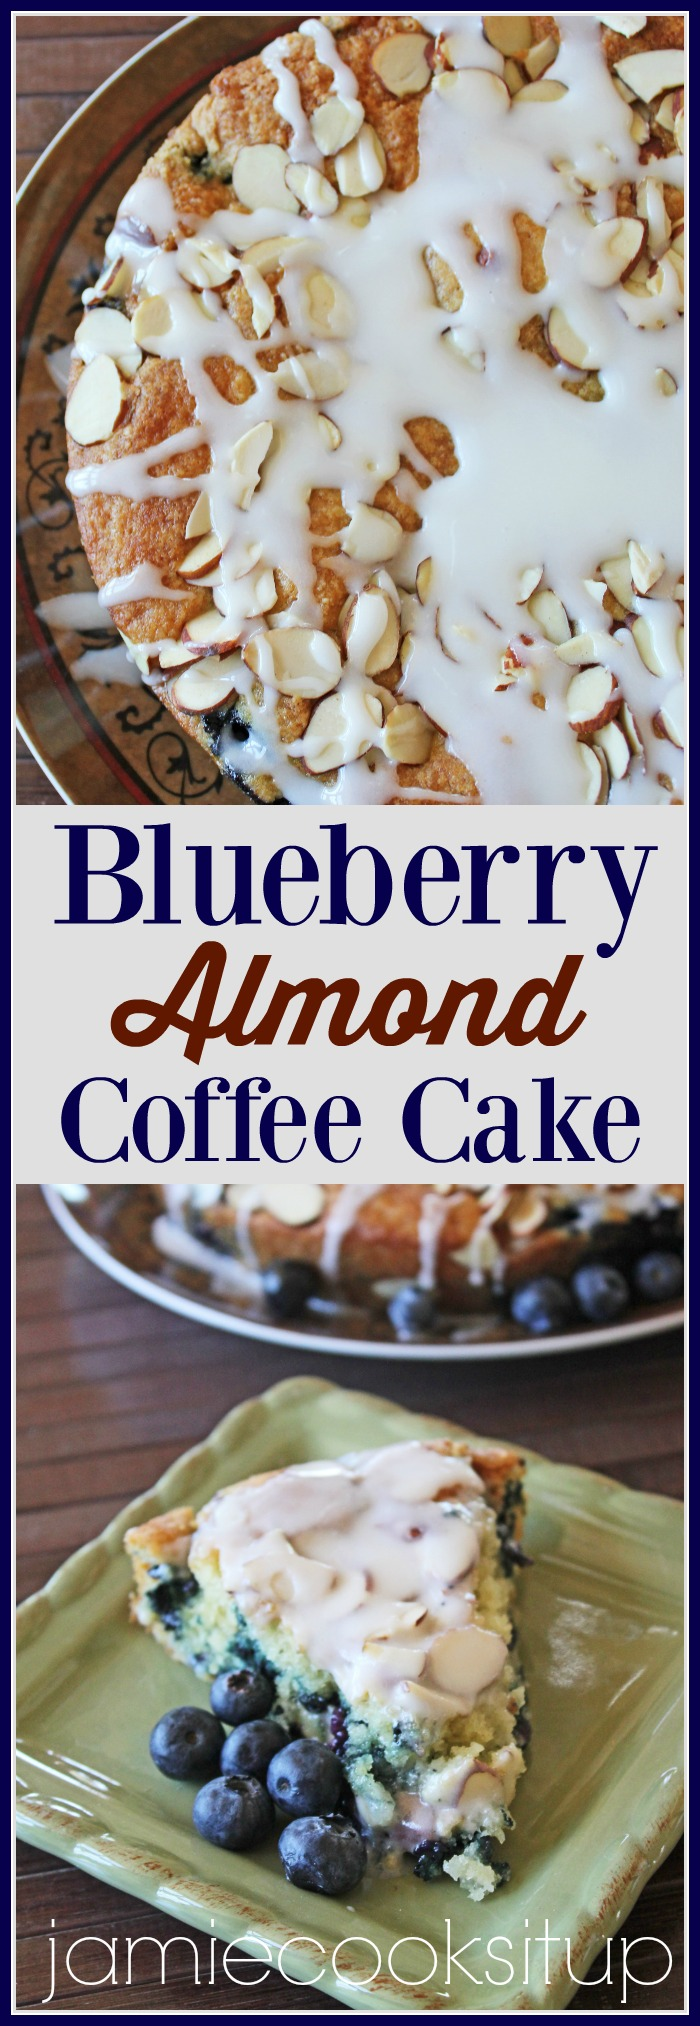 Blueberry Almond Coffee Cake Jamie Cooks It Up